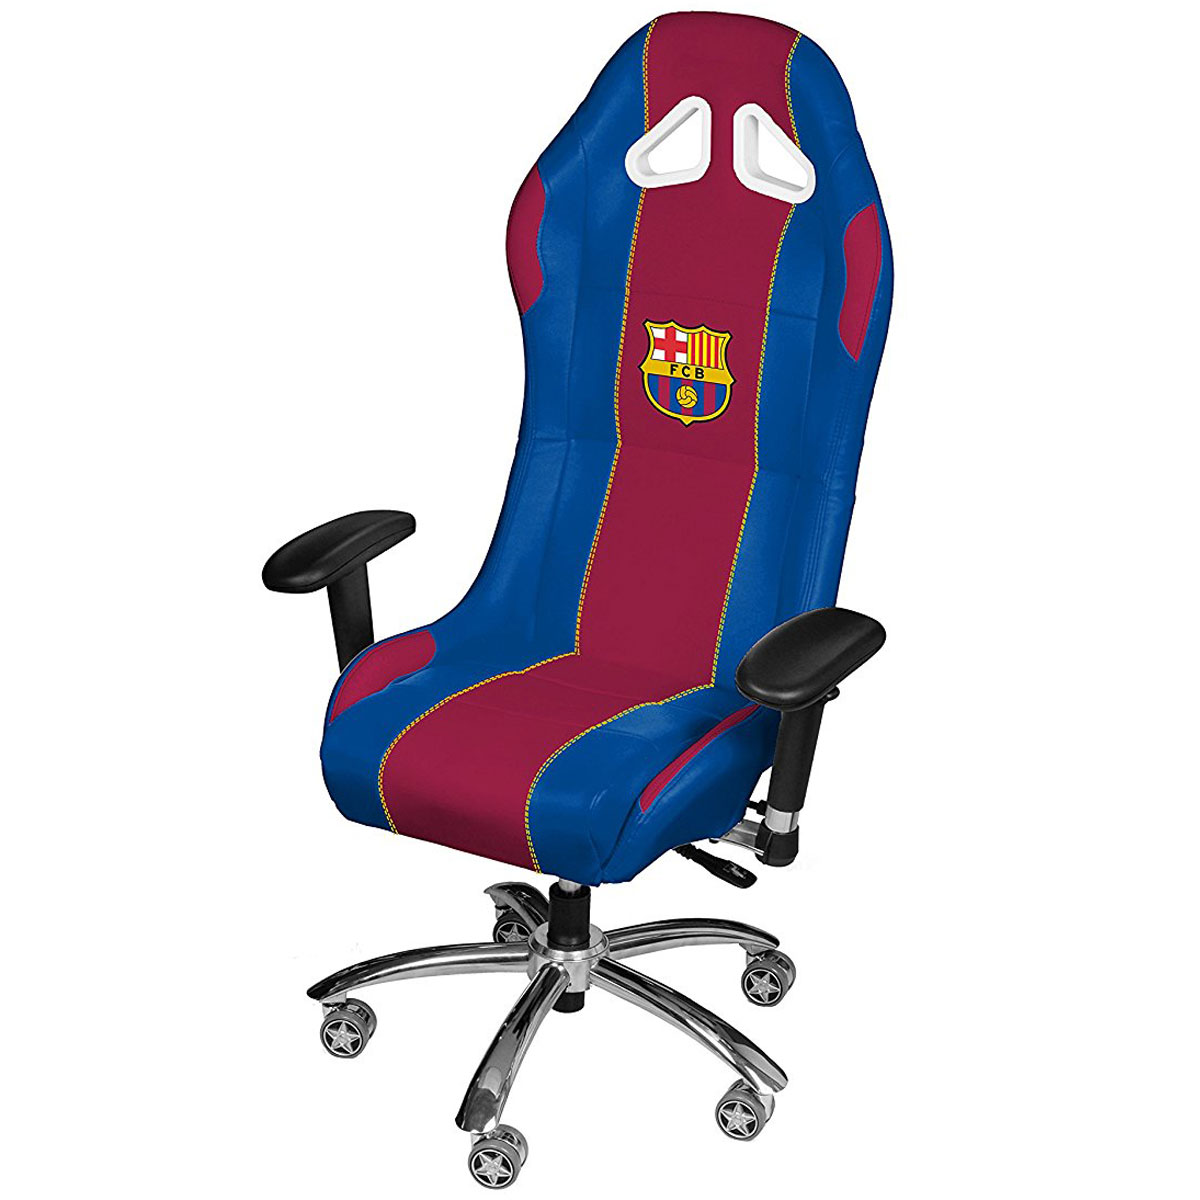 subsonic football gaming chair fc barcelone fauteuil. Black Bedroom Furniture Sets. Home Design Ideas